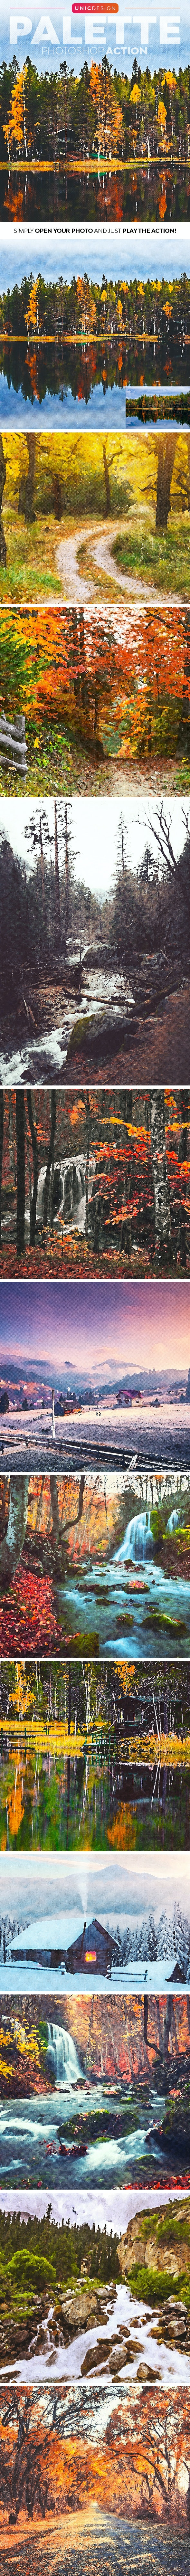 Palette Photoshop Action - Photo Effects Actions